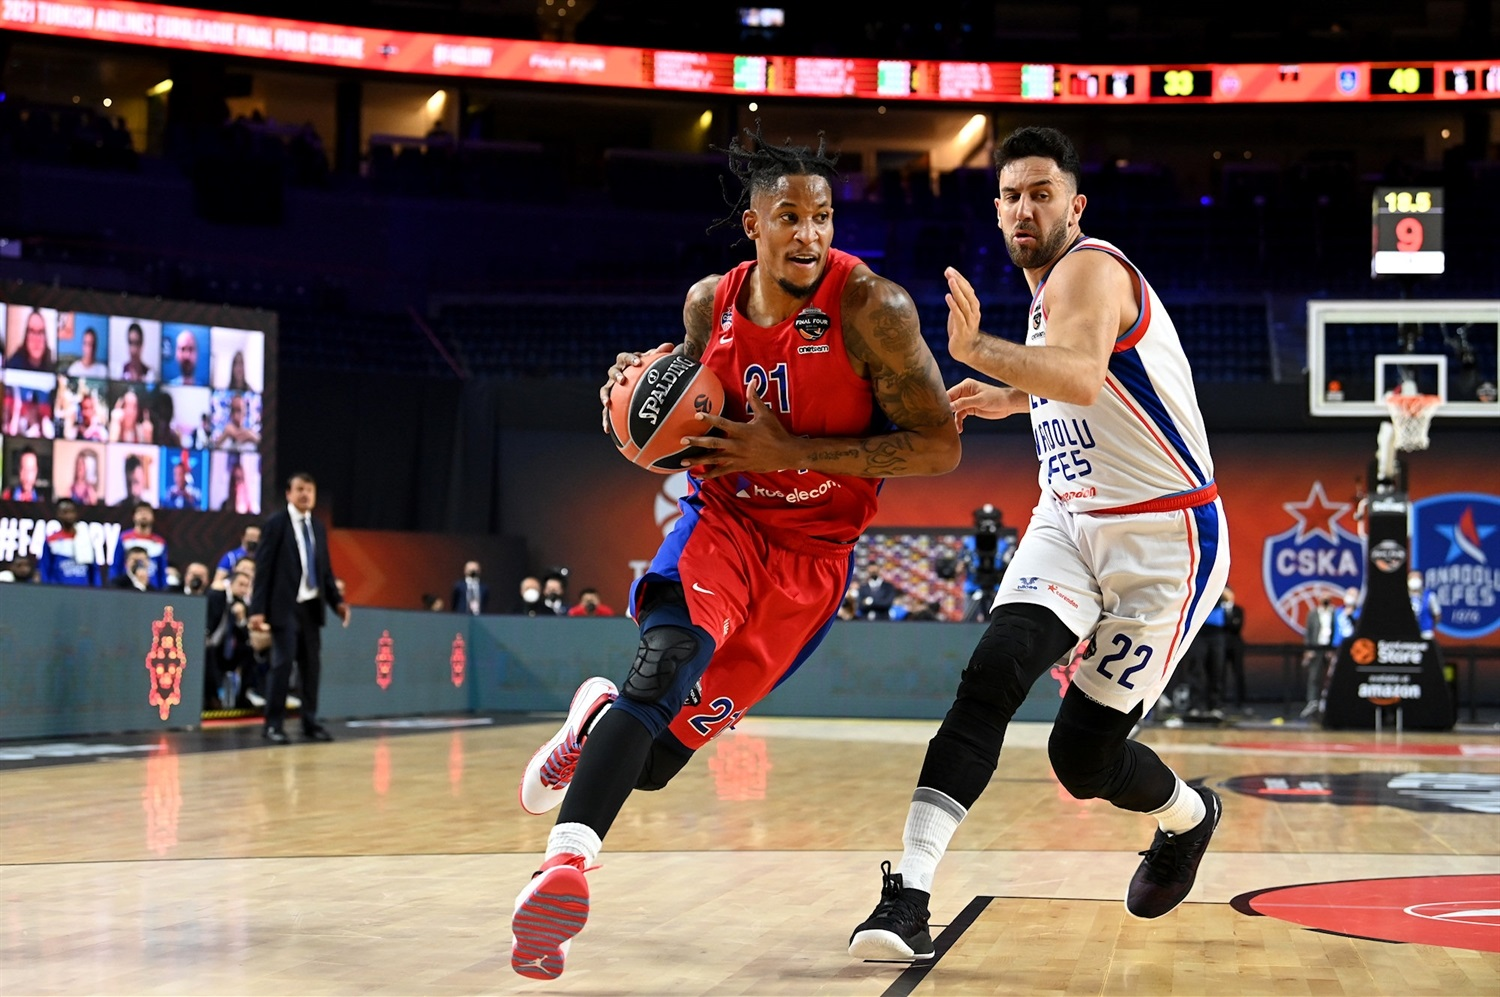 Will Clyburn - CSKA Moscow - Final Four Cologne 2021 - EB20